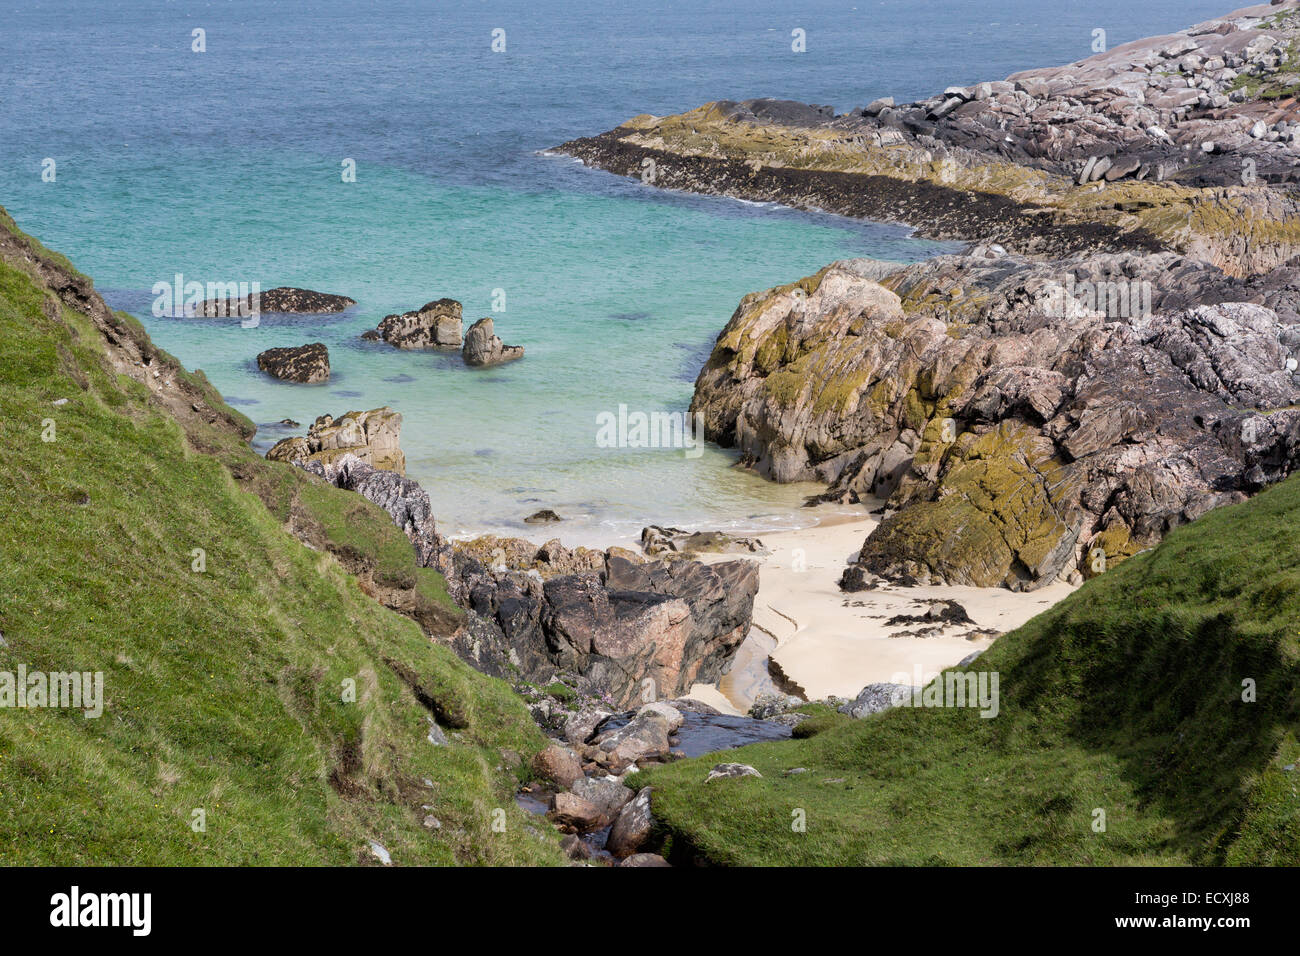 Small rocky beach on the Isle of Harris, Outer Hebrides, Scotland - Stock Image